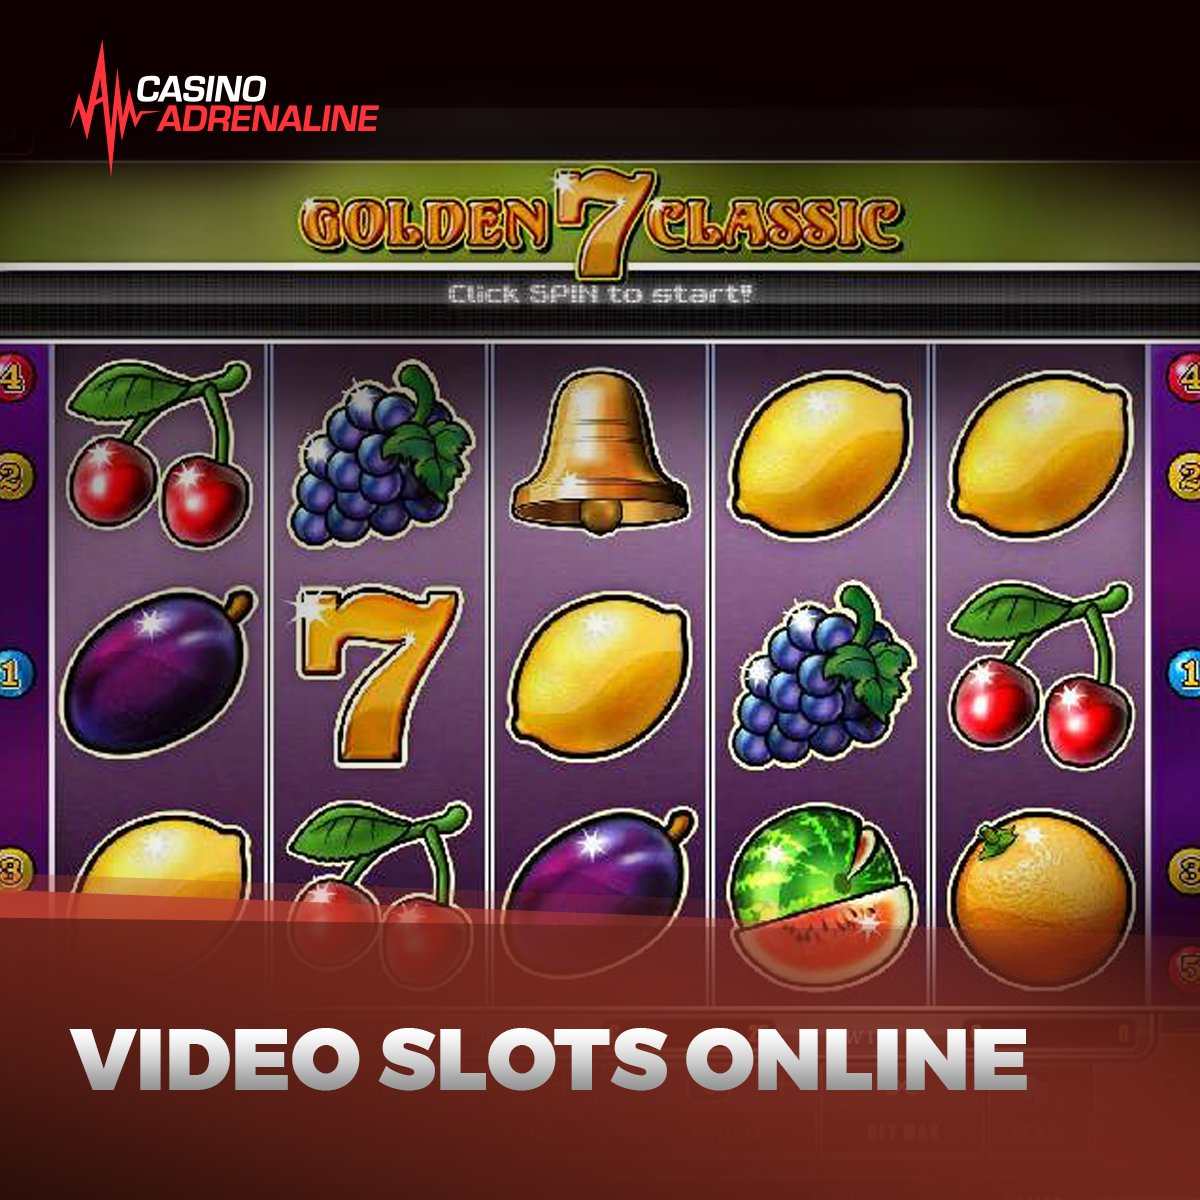 test Twitter Media - For extra fun try our video slots online! 😁 #CasinoAdrenaline #enjoythegame Try now: https://t.co/iFuIVGRvz8 https://t.co/RzWMNgyKqs